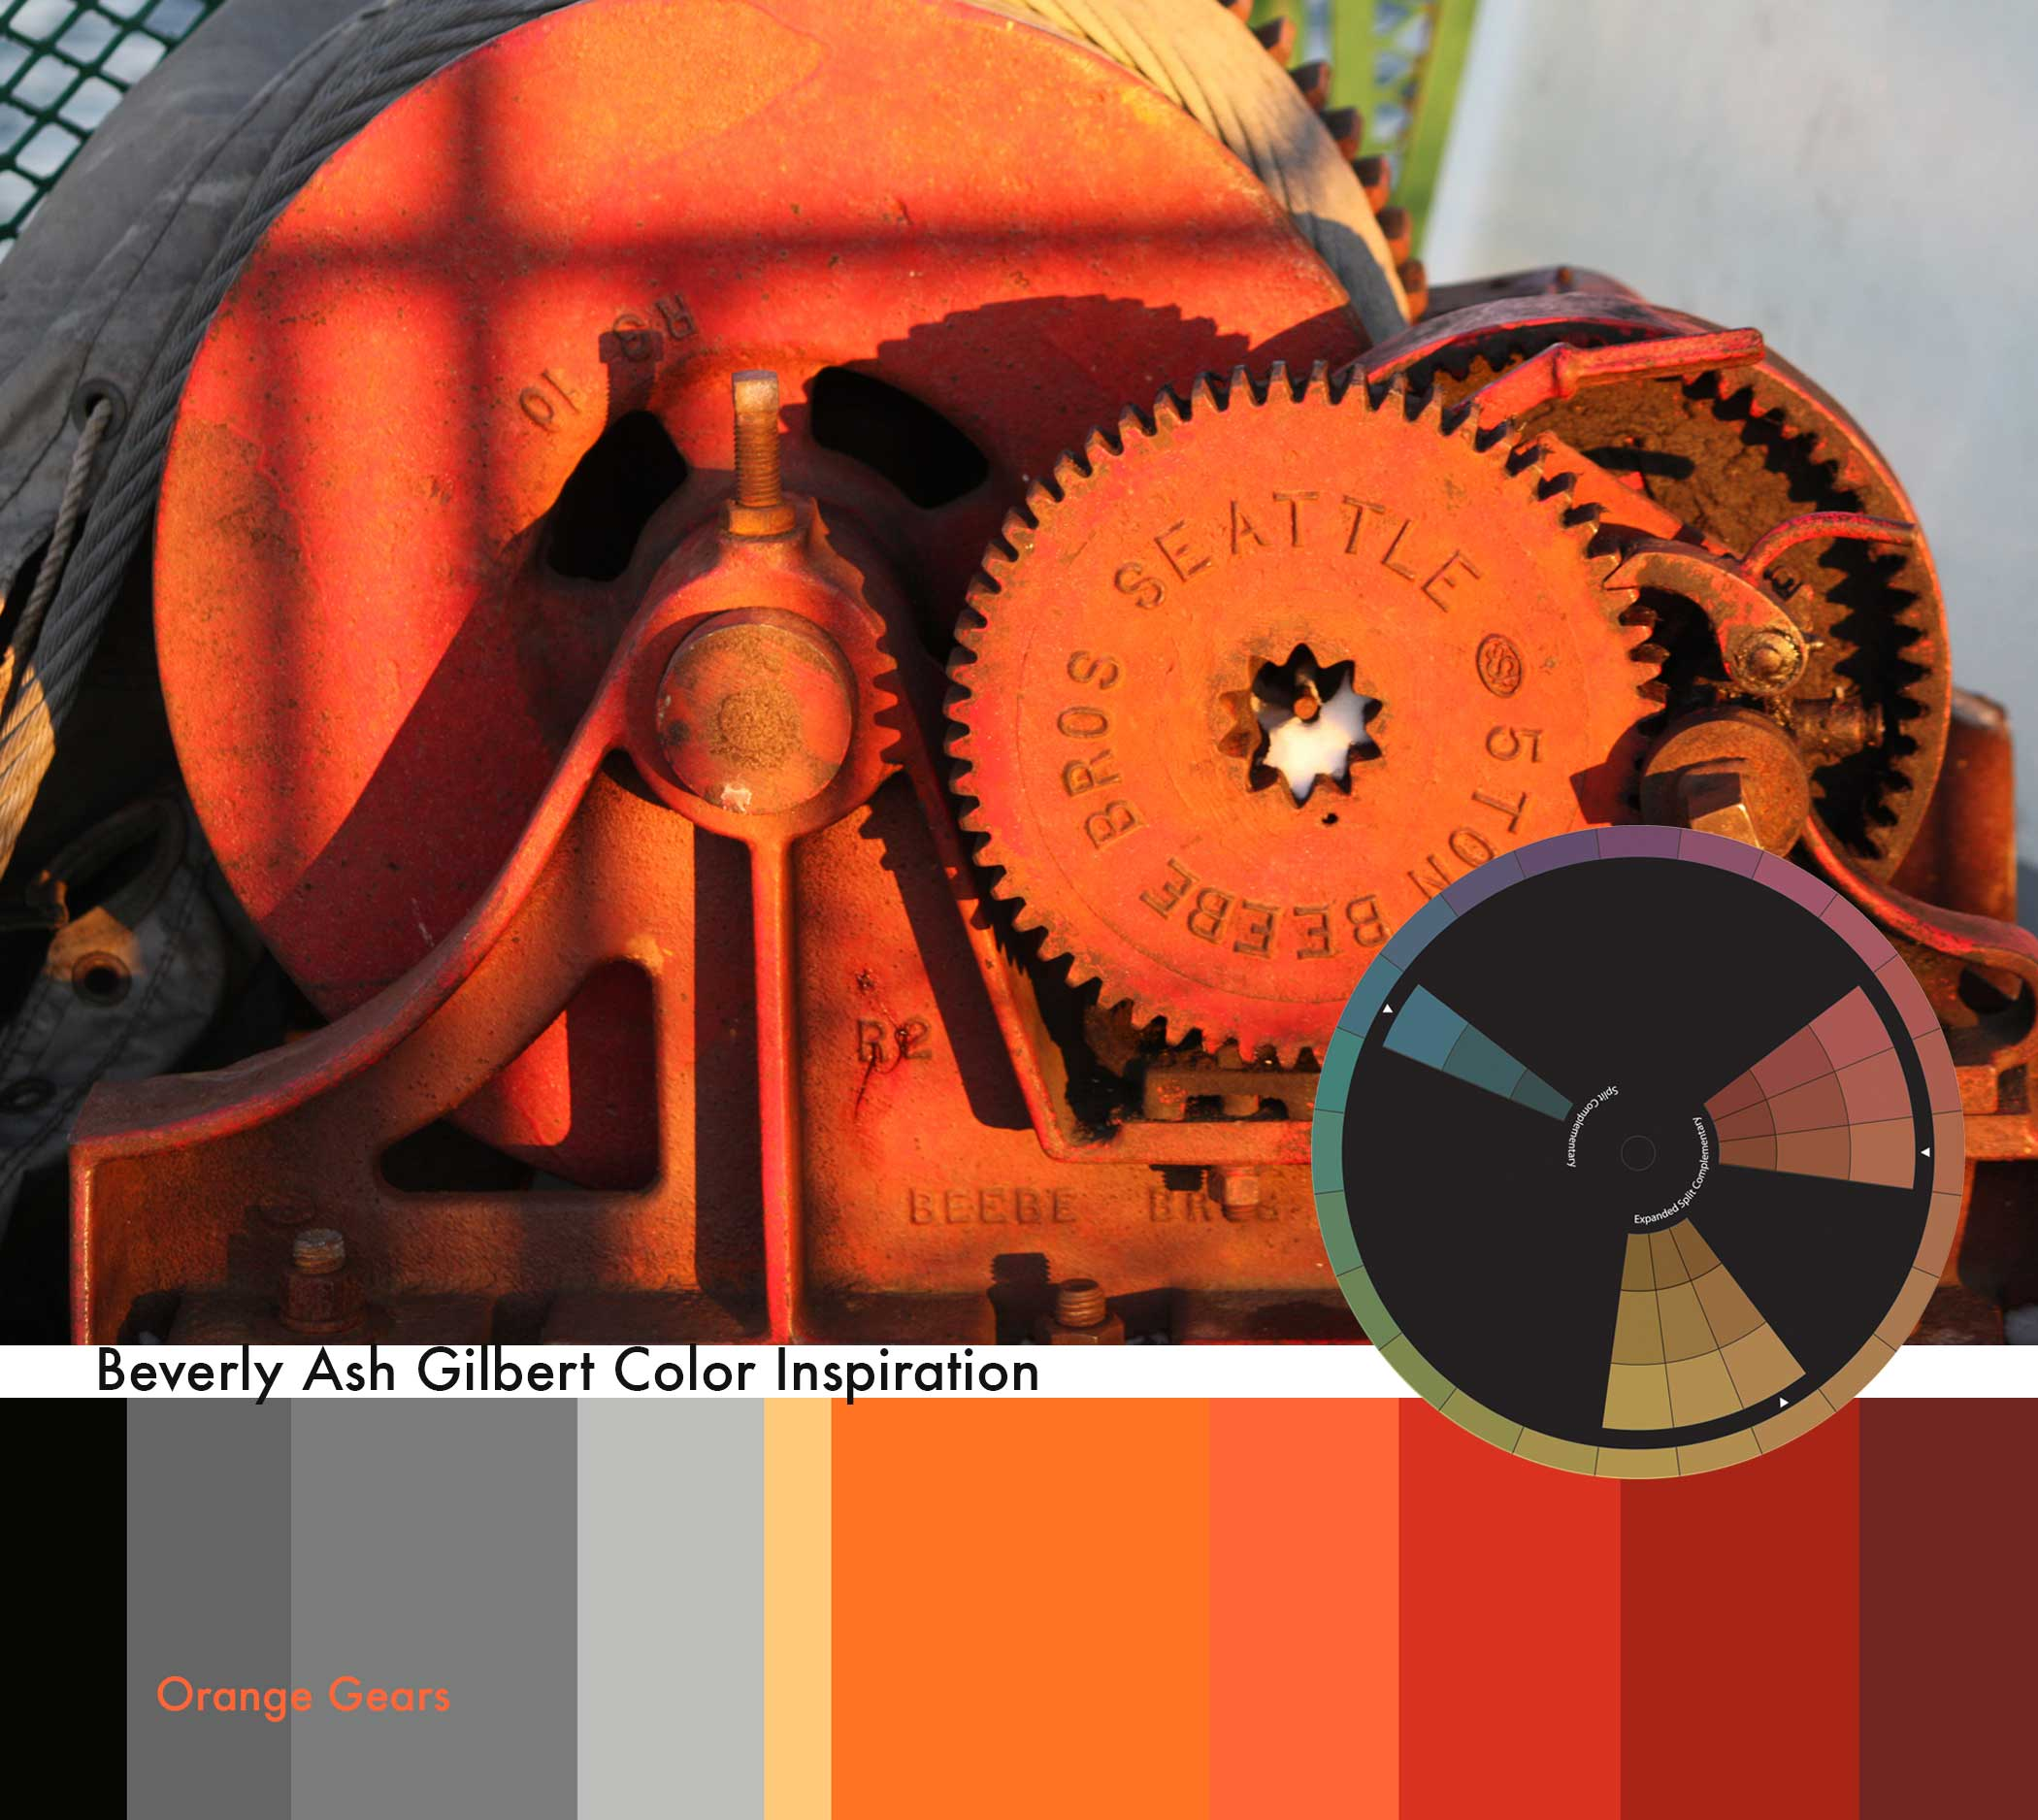 ColorInspiration_OrangeGears_small.jpg